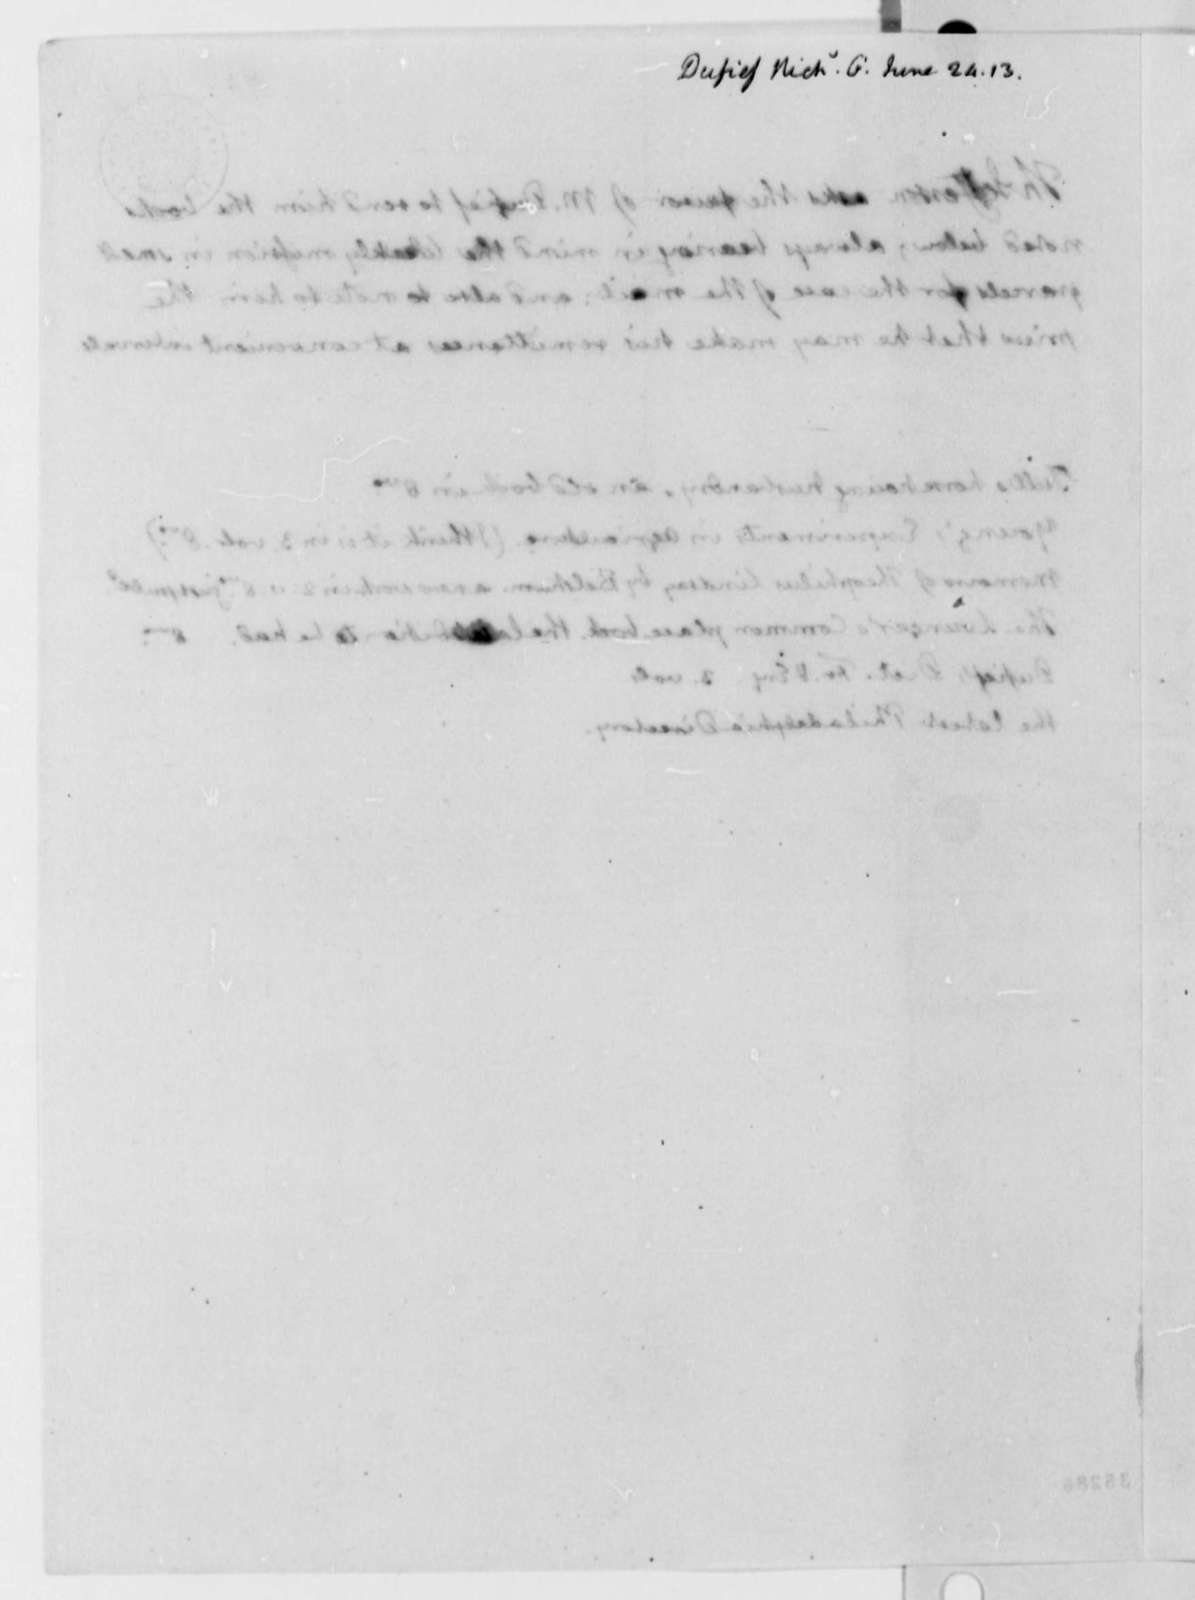 Thomas Jefferson to Nicholas Gouin Dufief, June 24, 1813, with List of Books